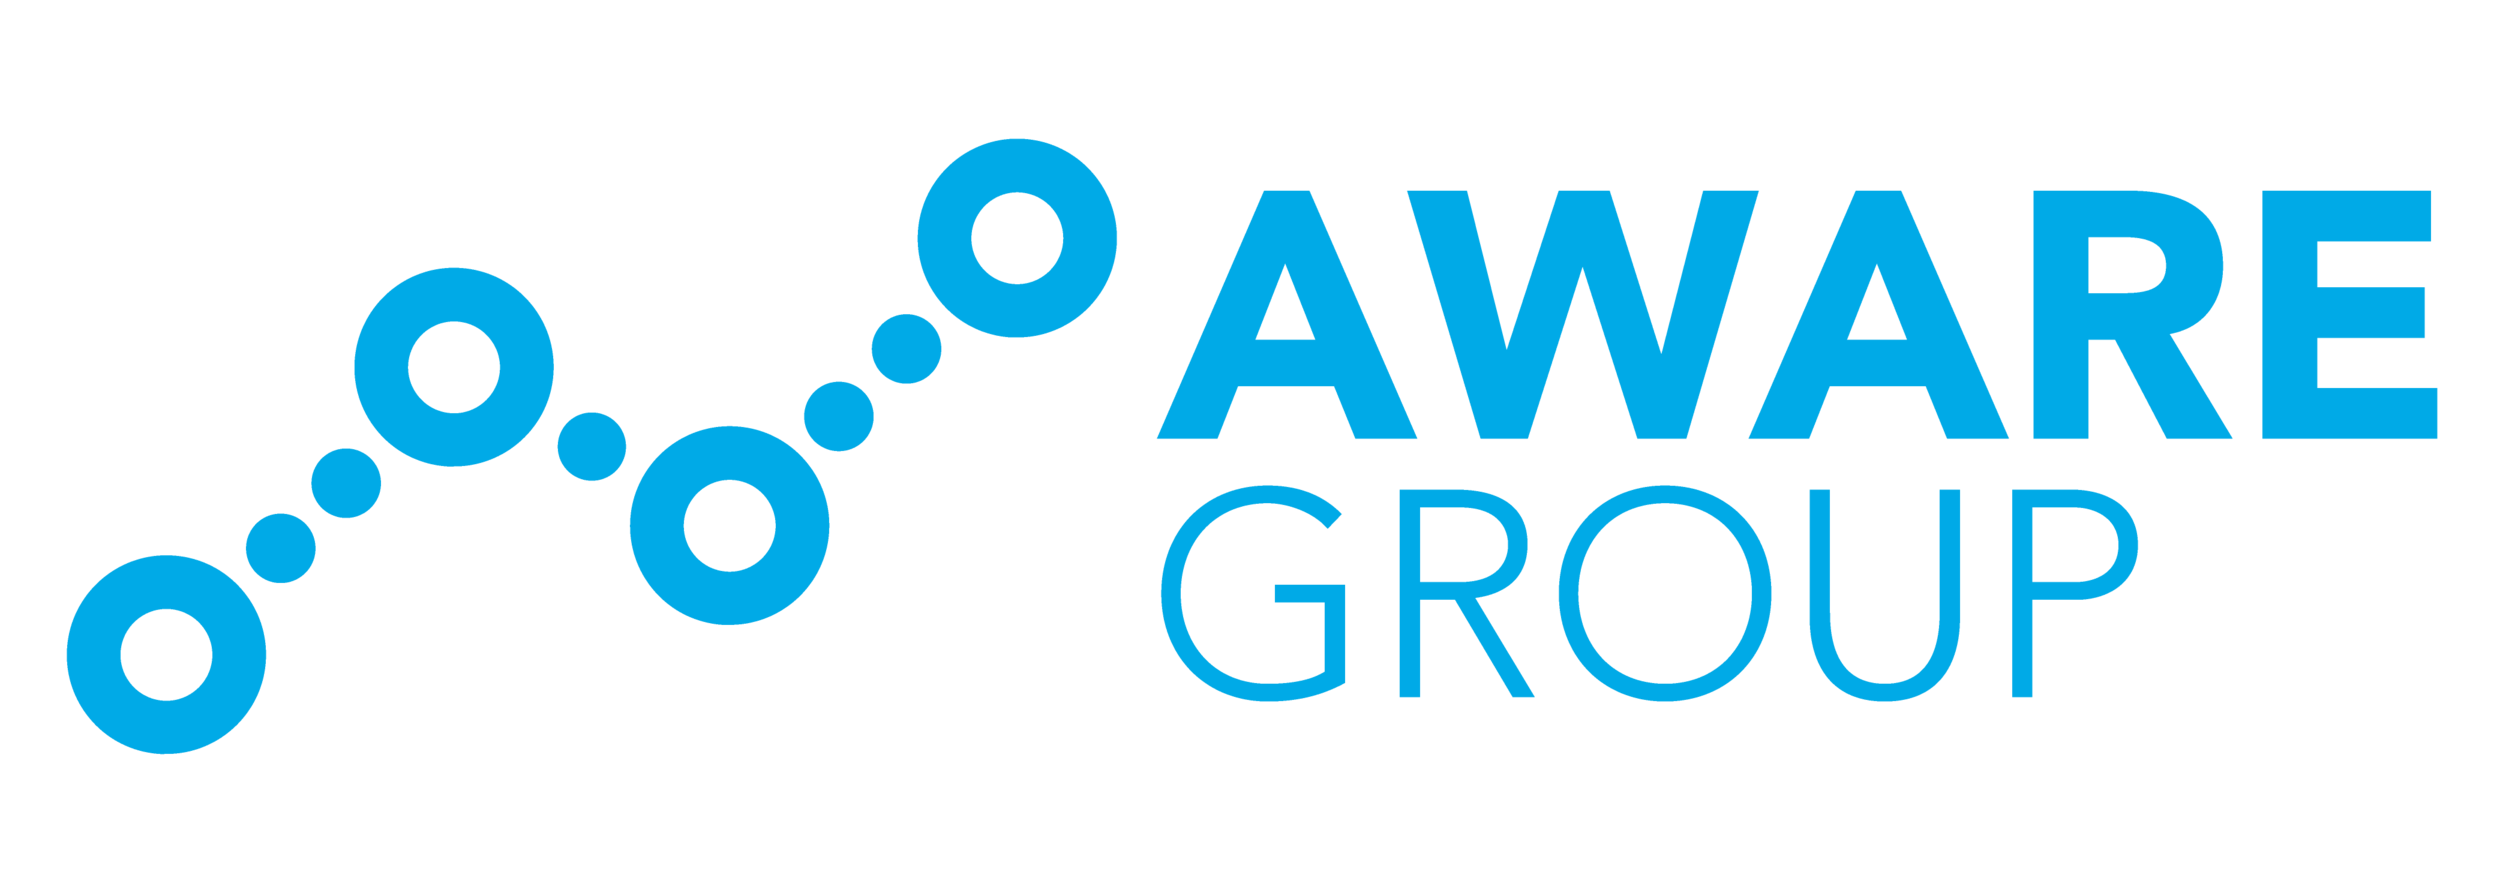 Aware-logo-01.png